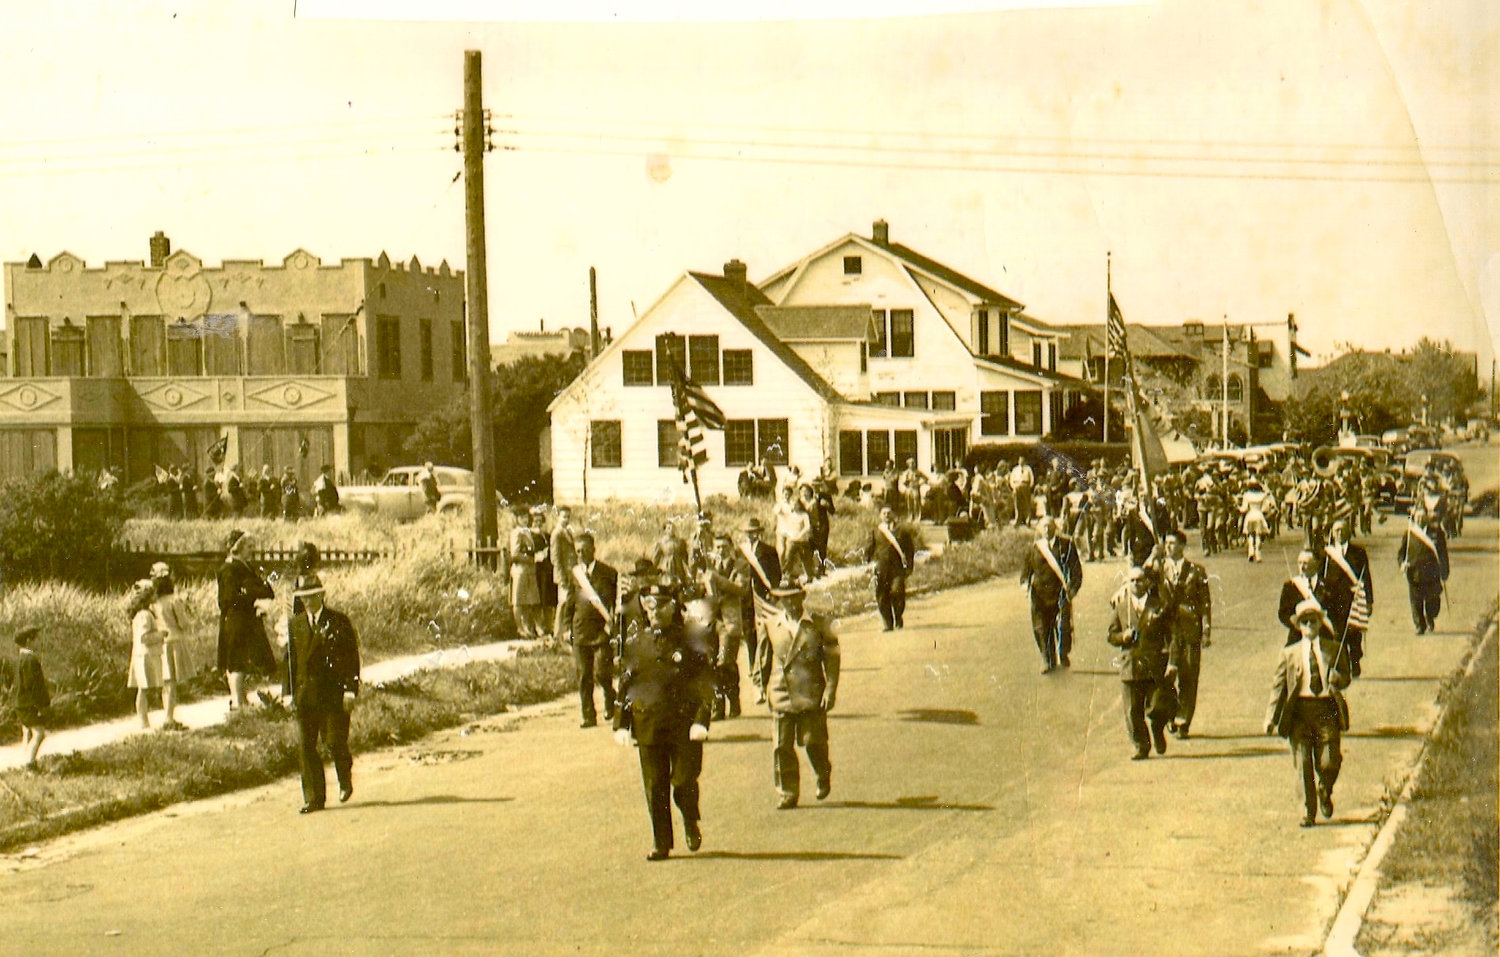 Pictured above is the Memorial Day Parade in 1939 at the corner of Grand Boulevard and Beech Street.